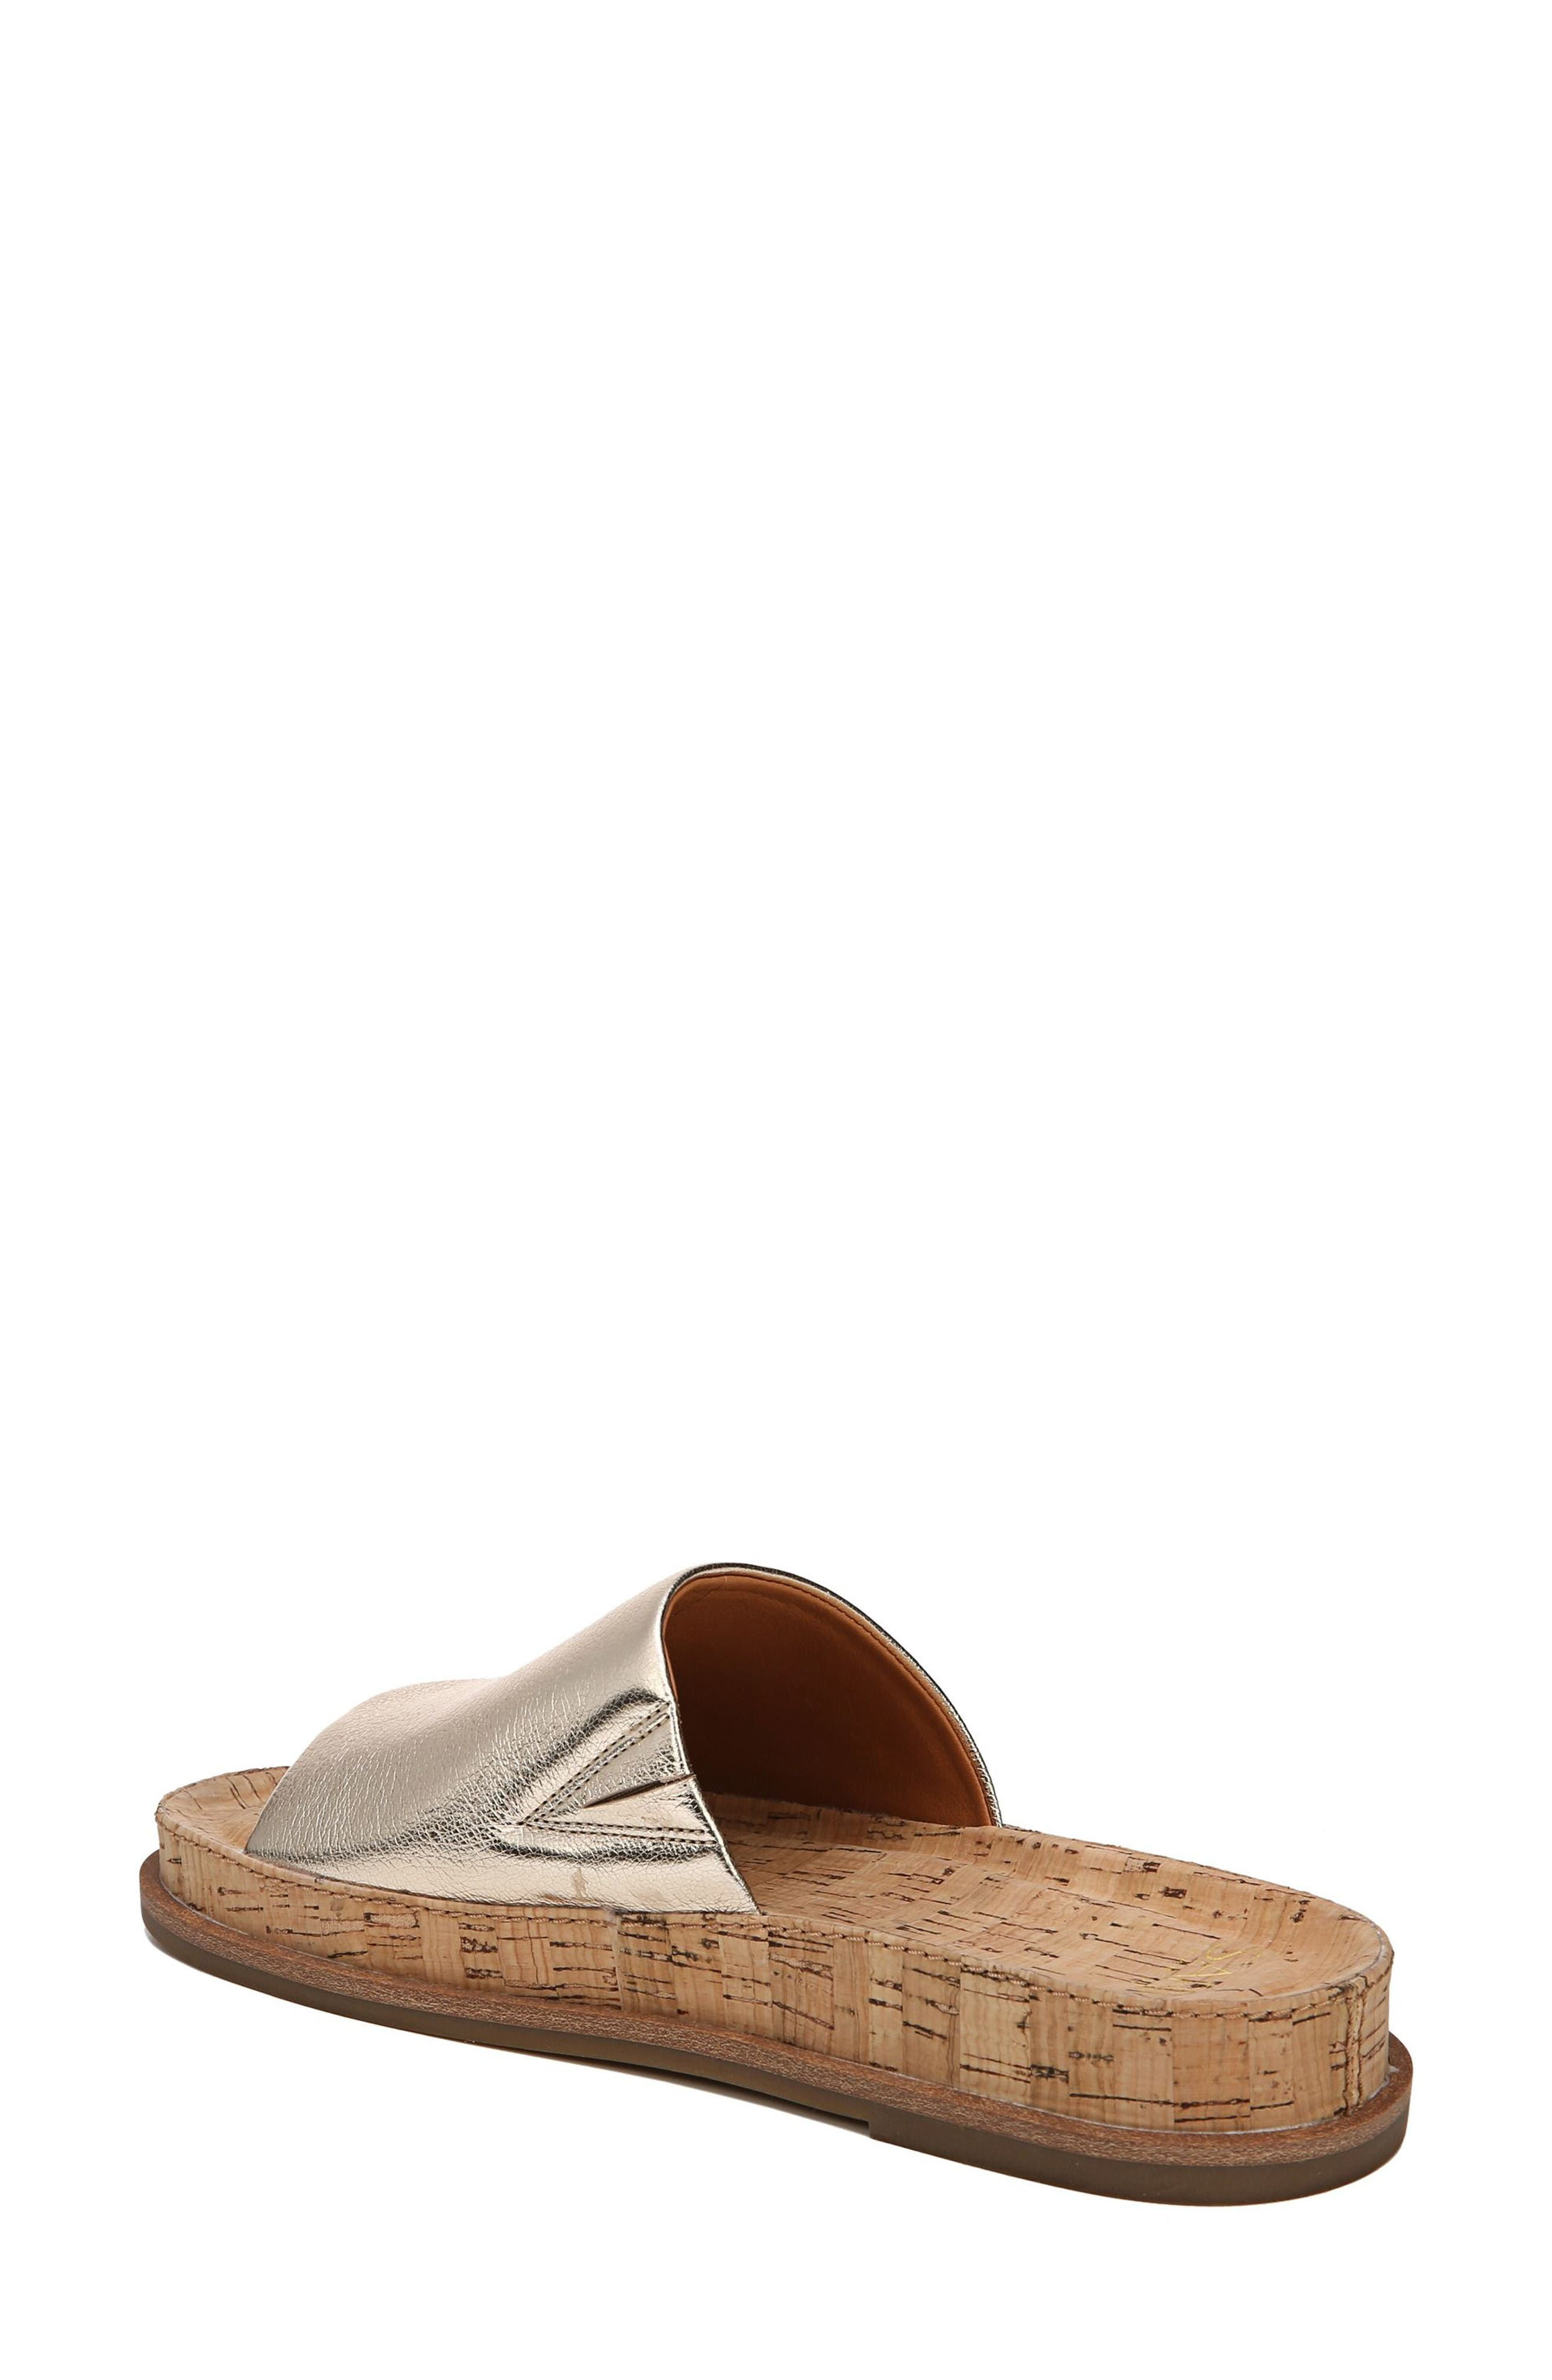 Tal Slide Sandal,                             Alternate thumbnail 6, color,